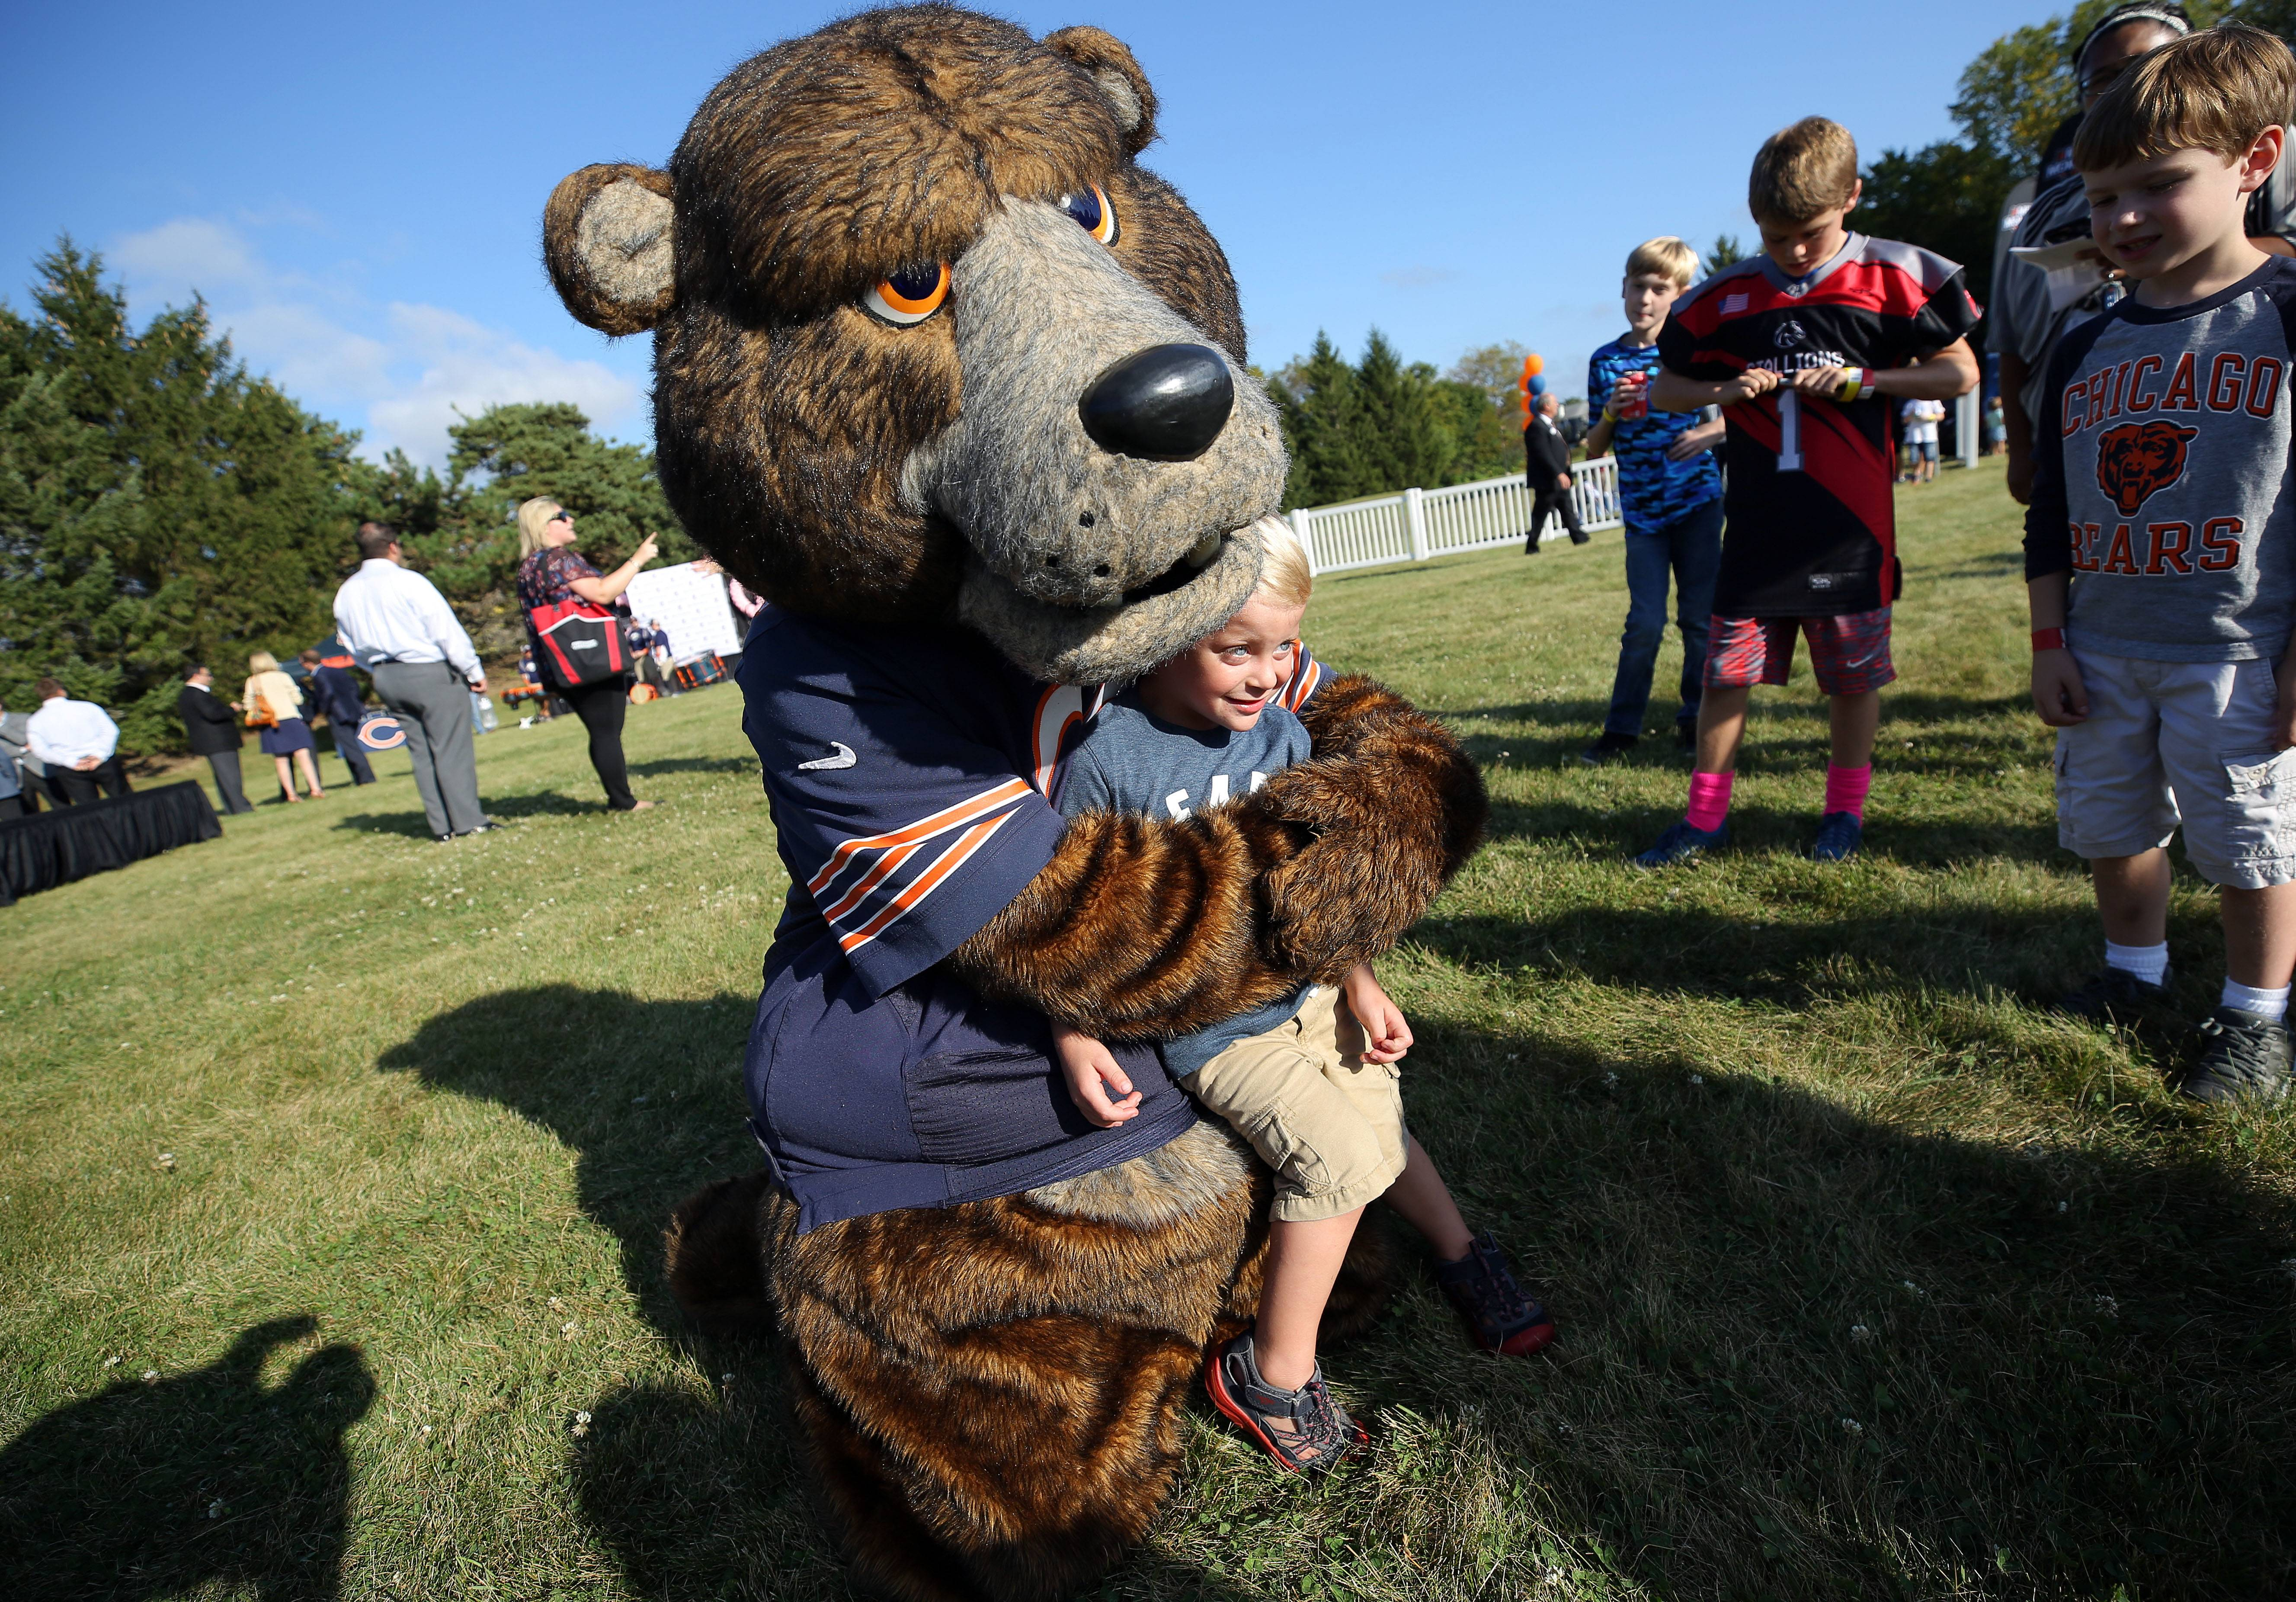 Kolton Lessner, 3, of Grayslake poses for a picture with Bears mascot Staley on Tuesday at Advocate Condell Medical Center in Libertyville.